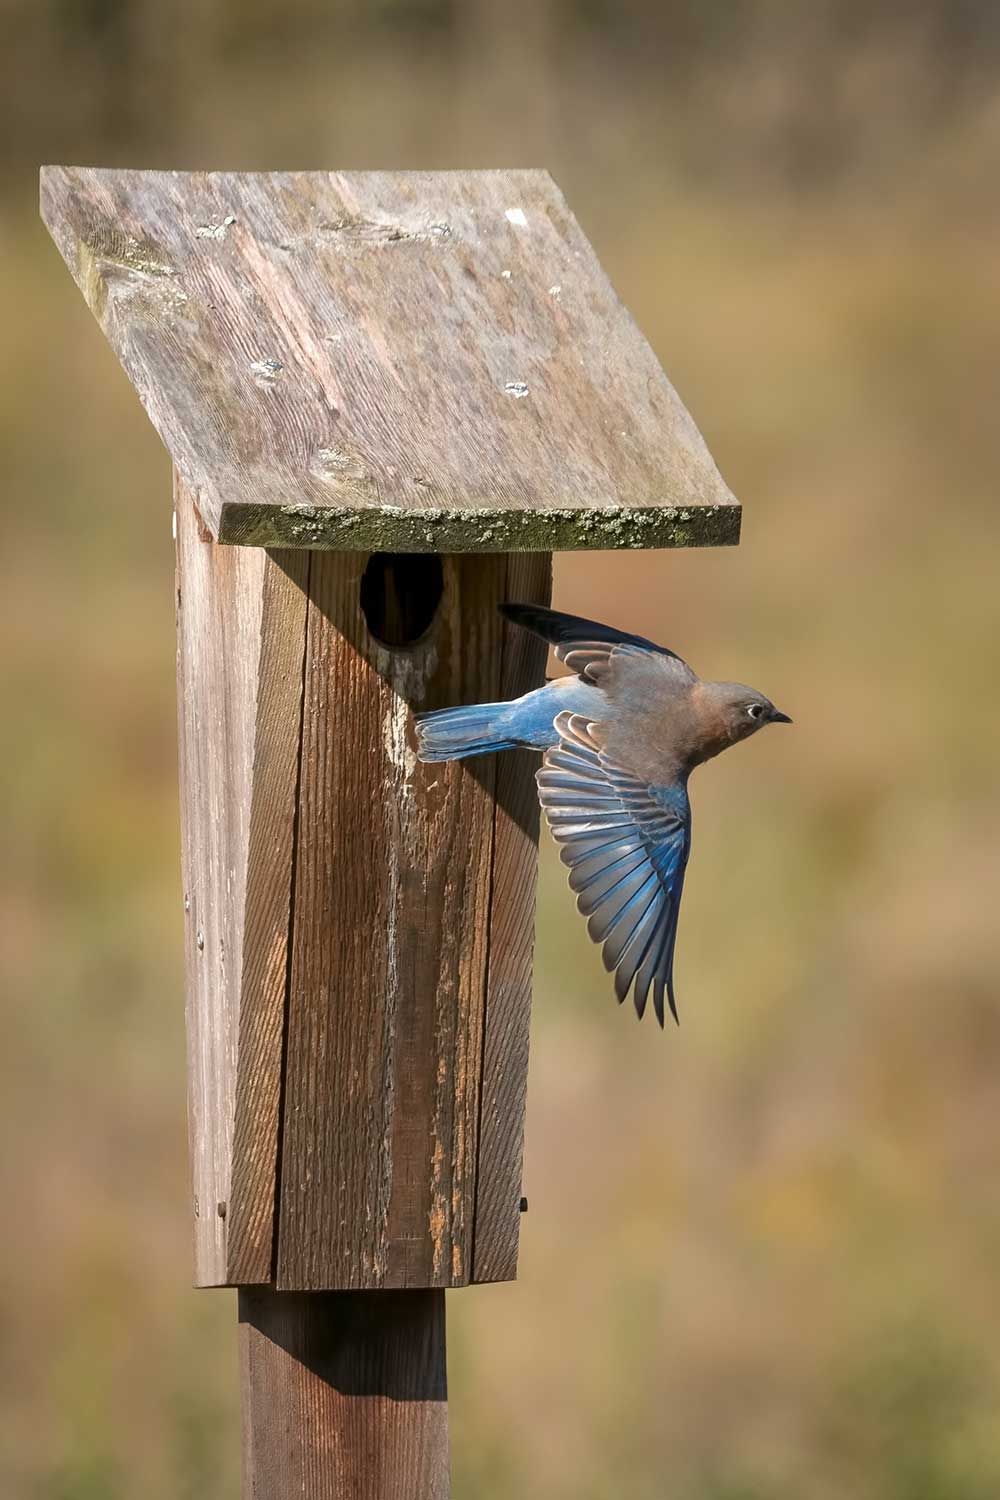 Photo for: Birdhouse bests competition in November portion of photo contest